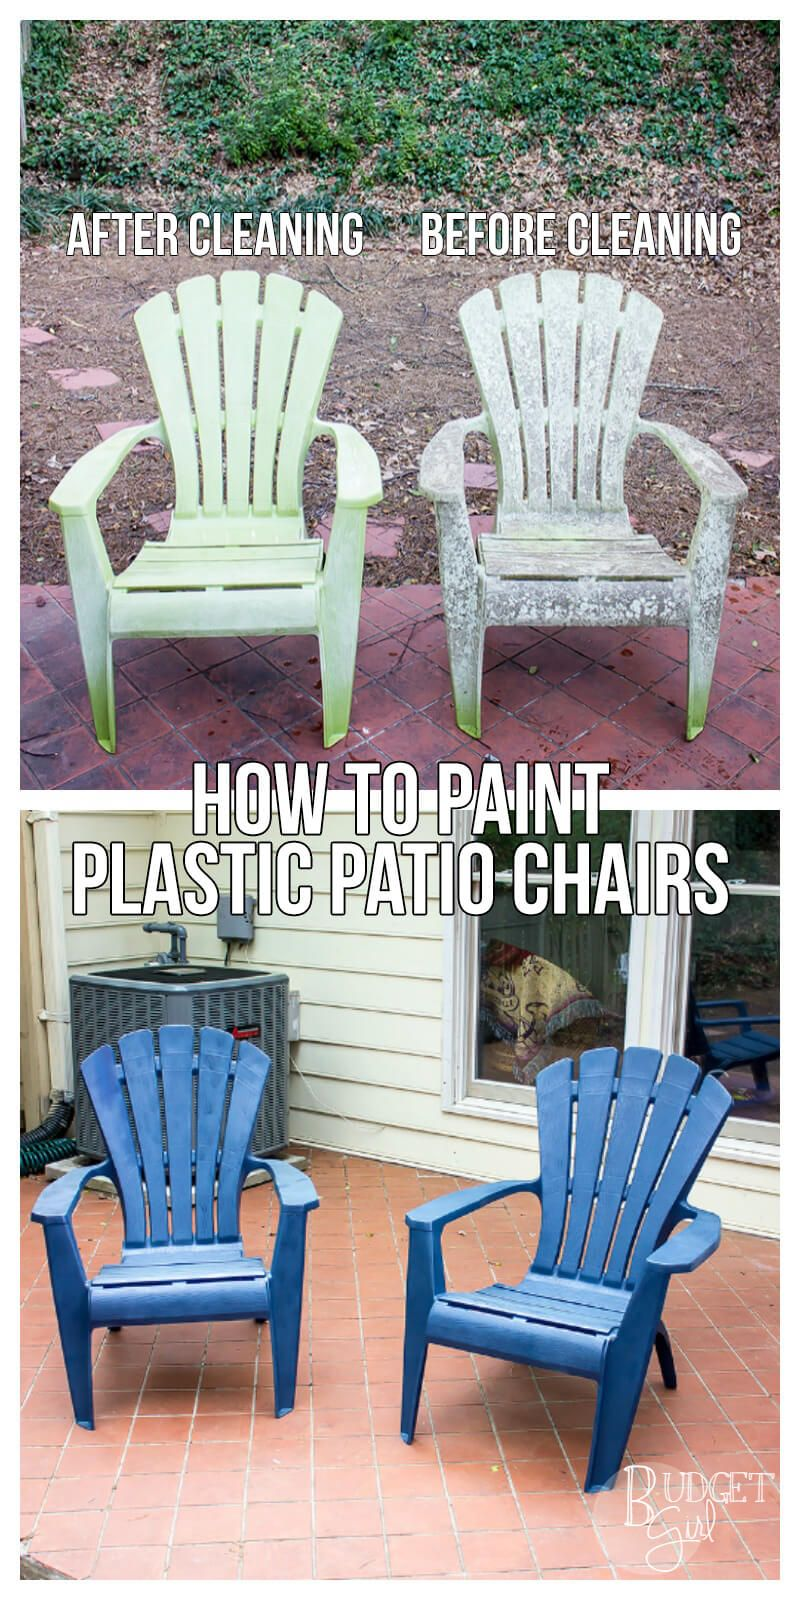 how to paint plastic patio chairs plastic patio chairs painting